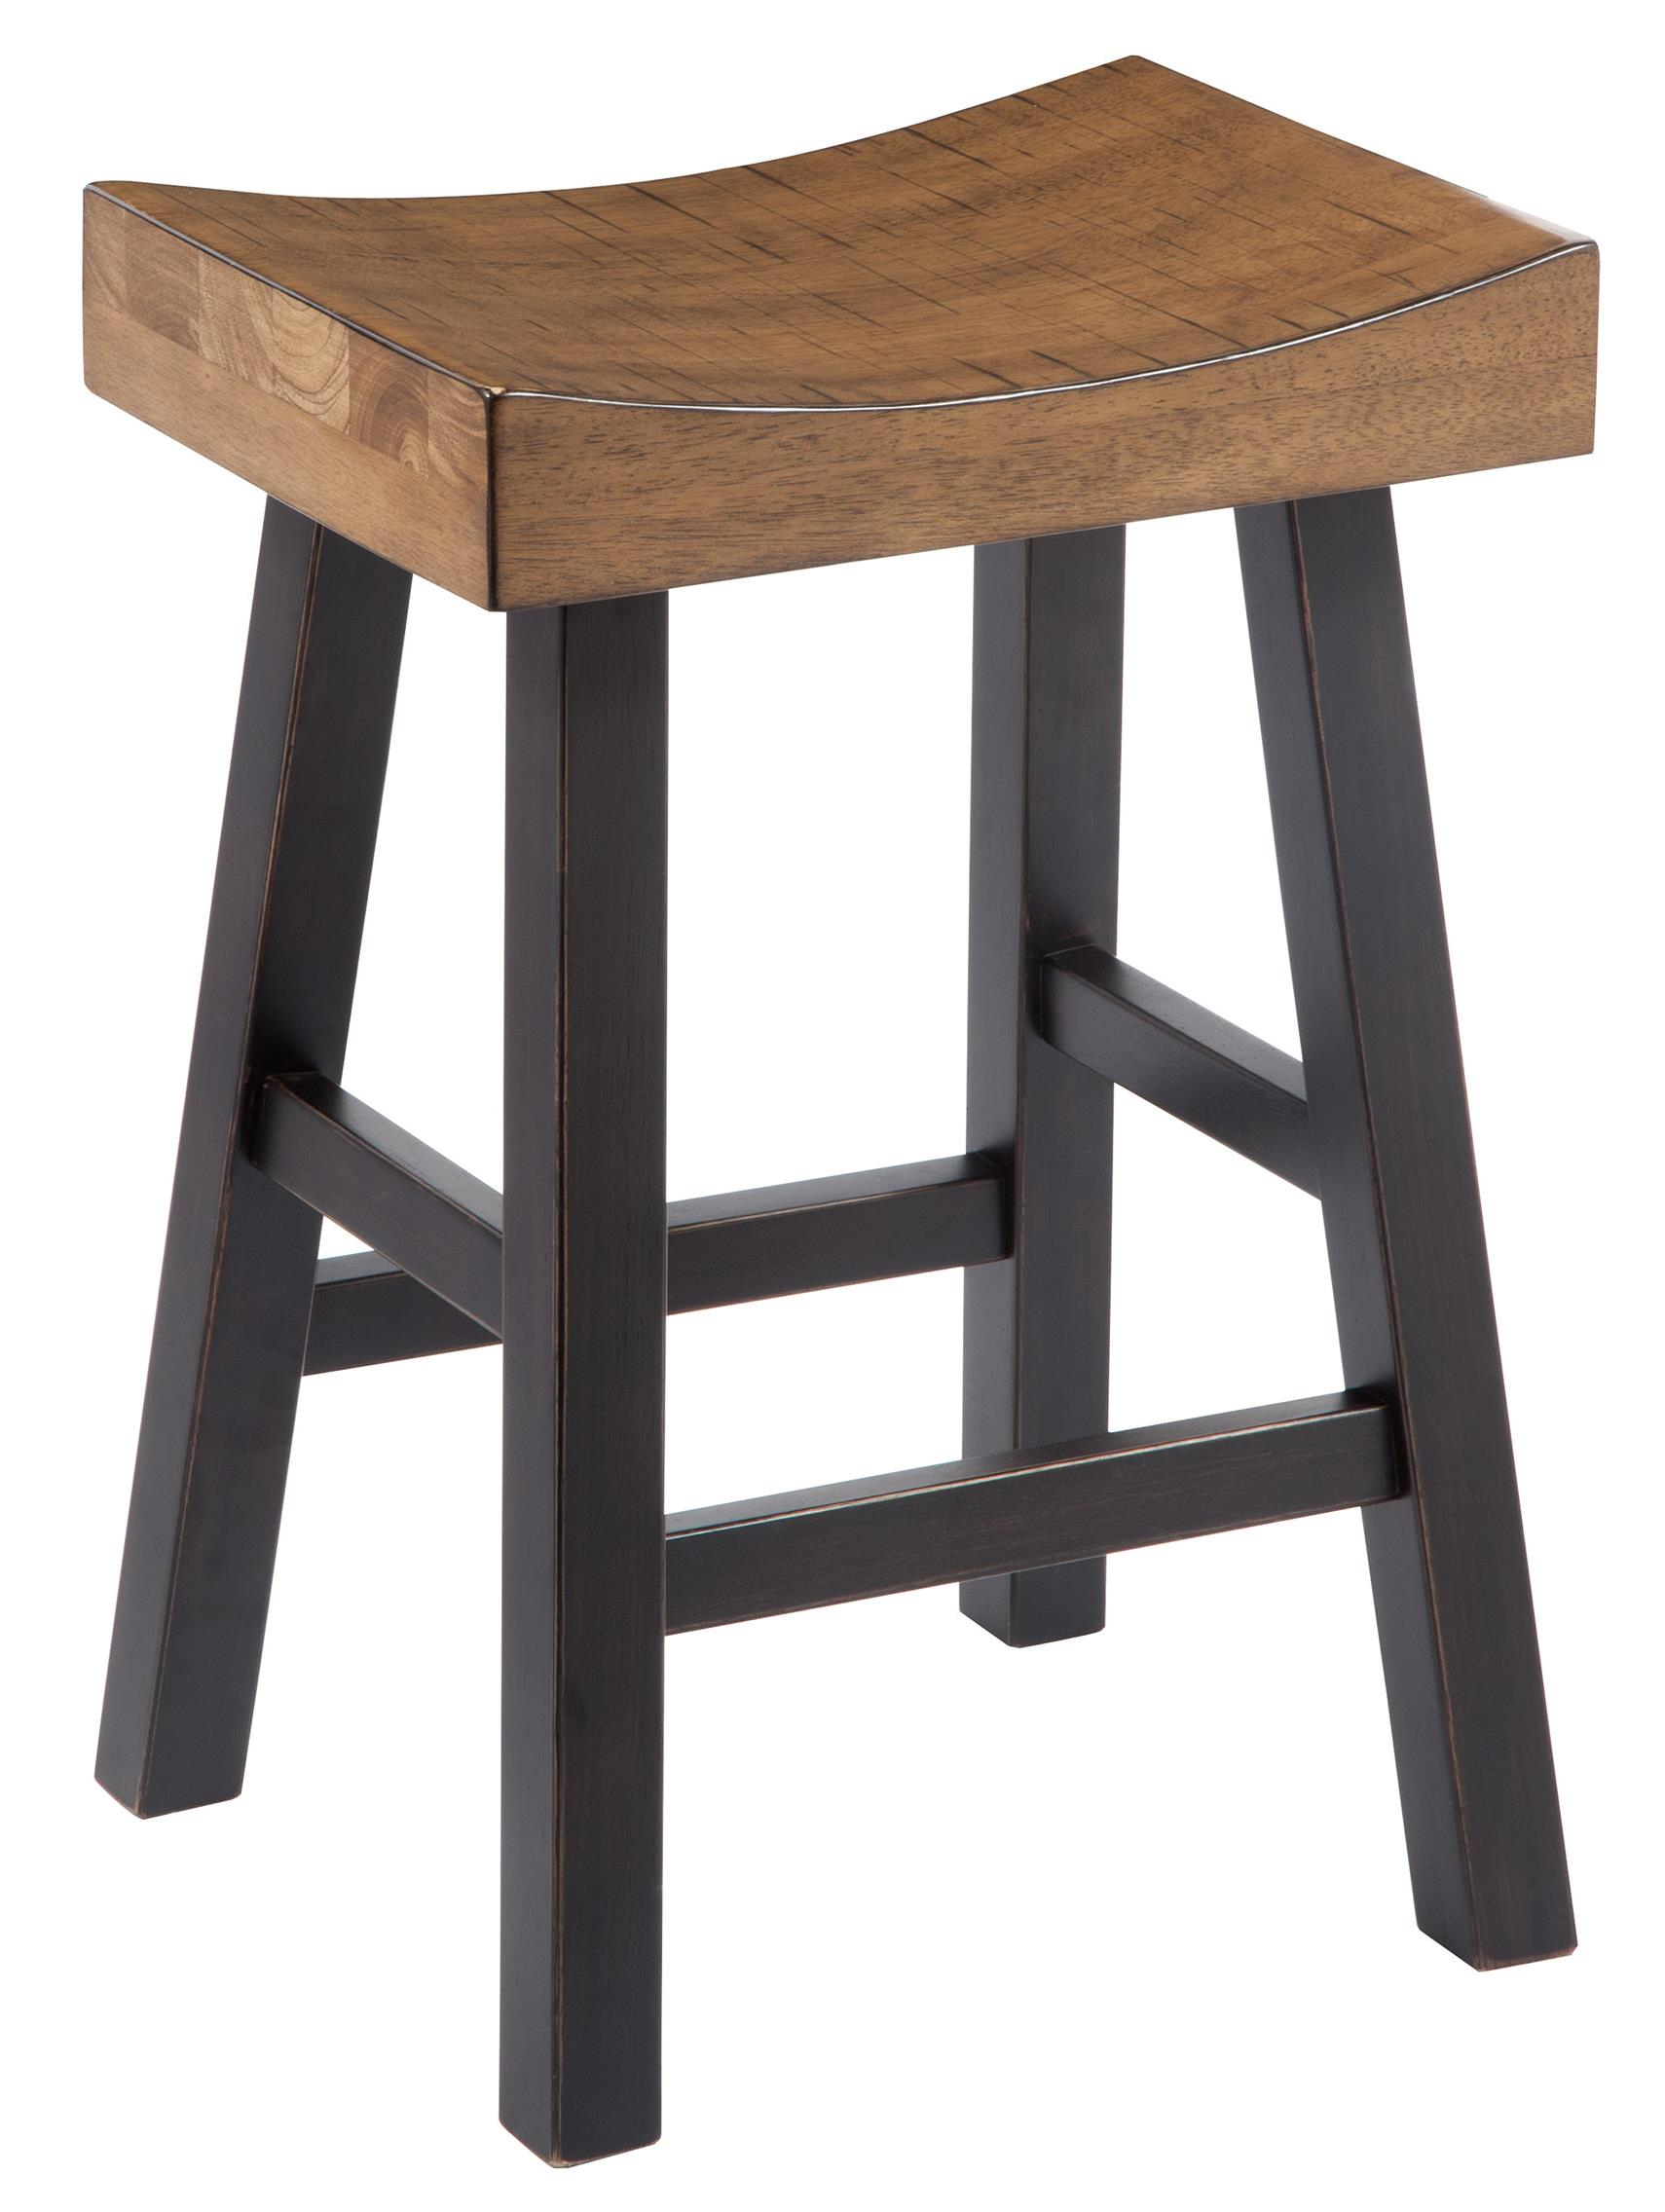 Signature Design by Ashley Glosco Stool - Item Number: D548-024